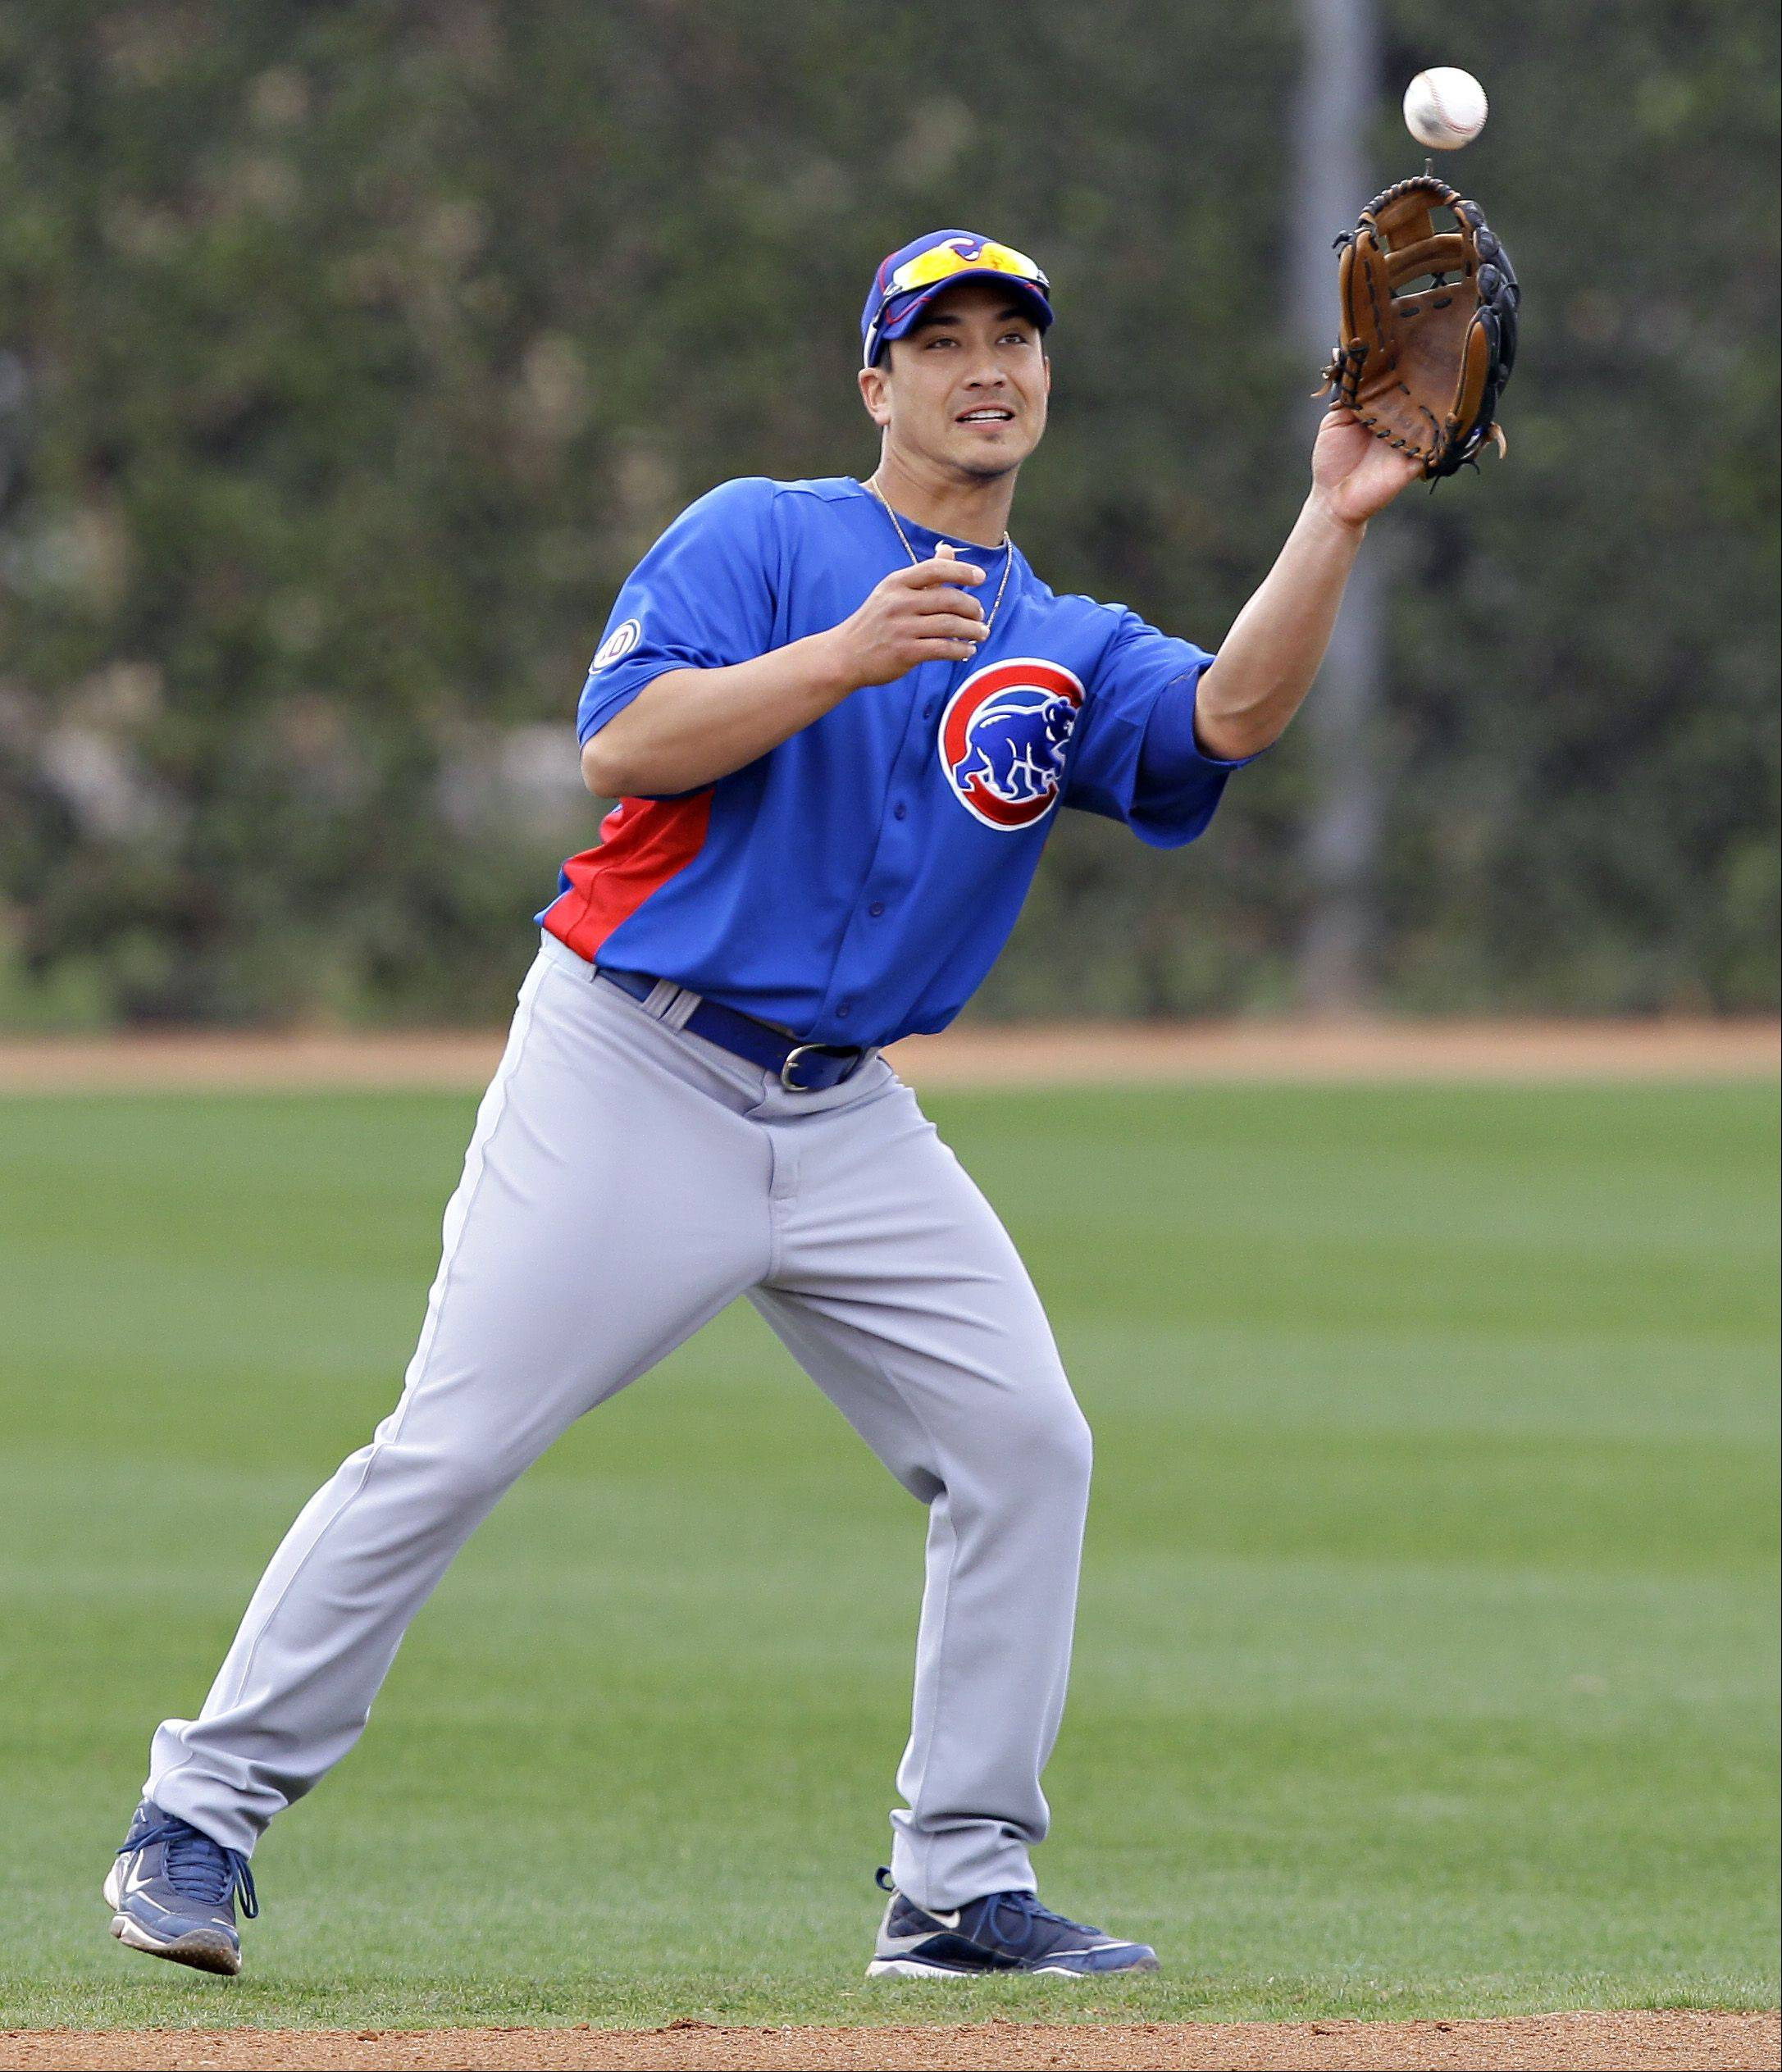 Chicago Cubs infielder Darwin Barney makes a catch during spring training baseball Friday, Feb. 18, 2011 in Mesa, Ariz.